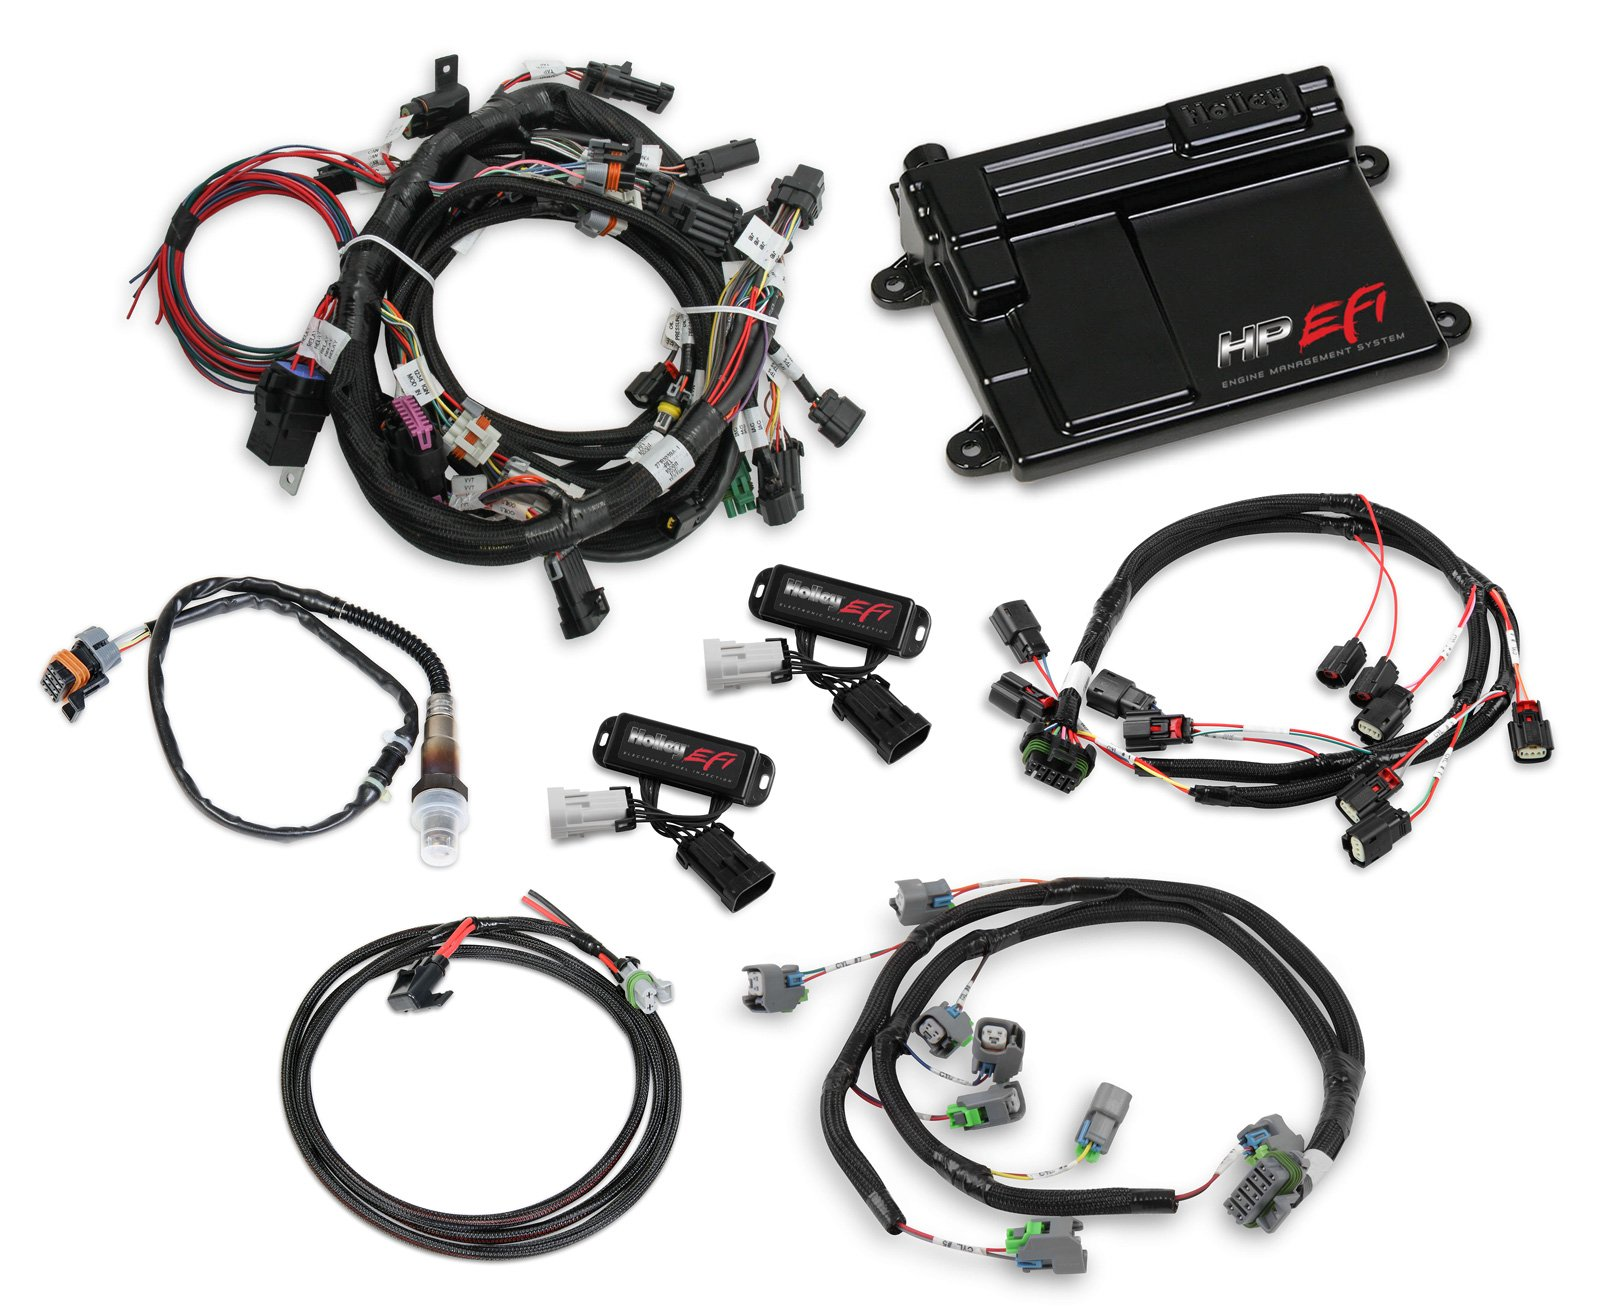 550-628 - Ford Coyote Ti-VCT Capable HP EFI Kit, (Does